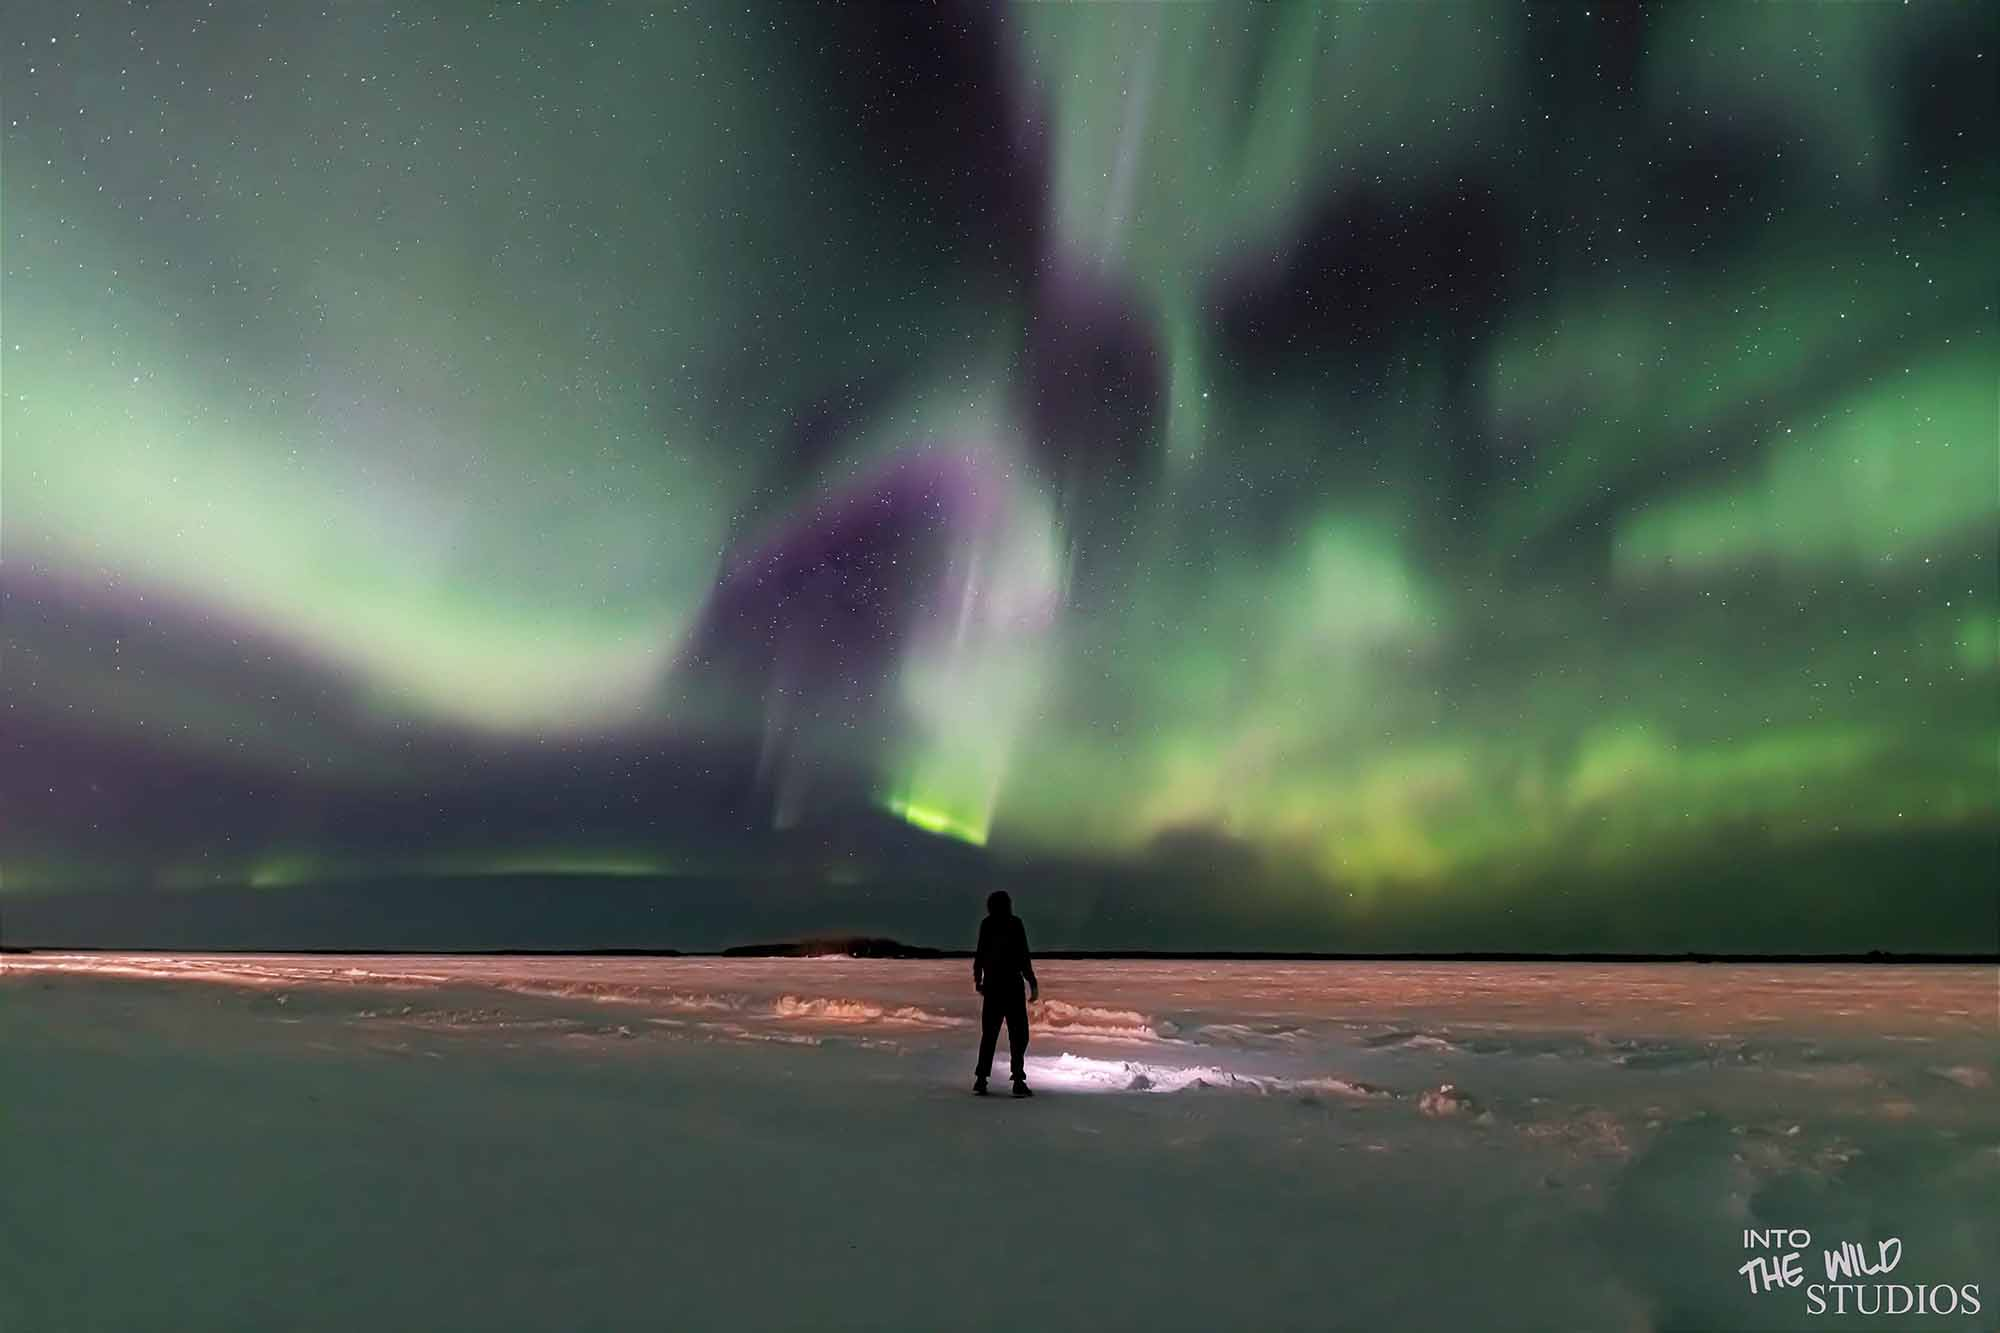 Jaredan Smith from the Pinehouse Photography Club captured this unique image under the northern lights. He posts his pictures on his Facebook page 'Into the Wild Studios' to help motivate and inspire others who might be going through tough times, such as depression and anxiety.